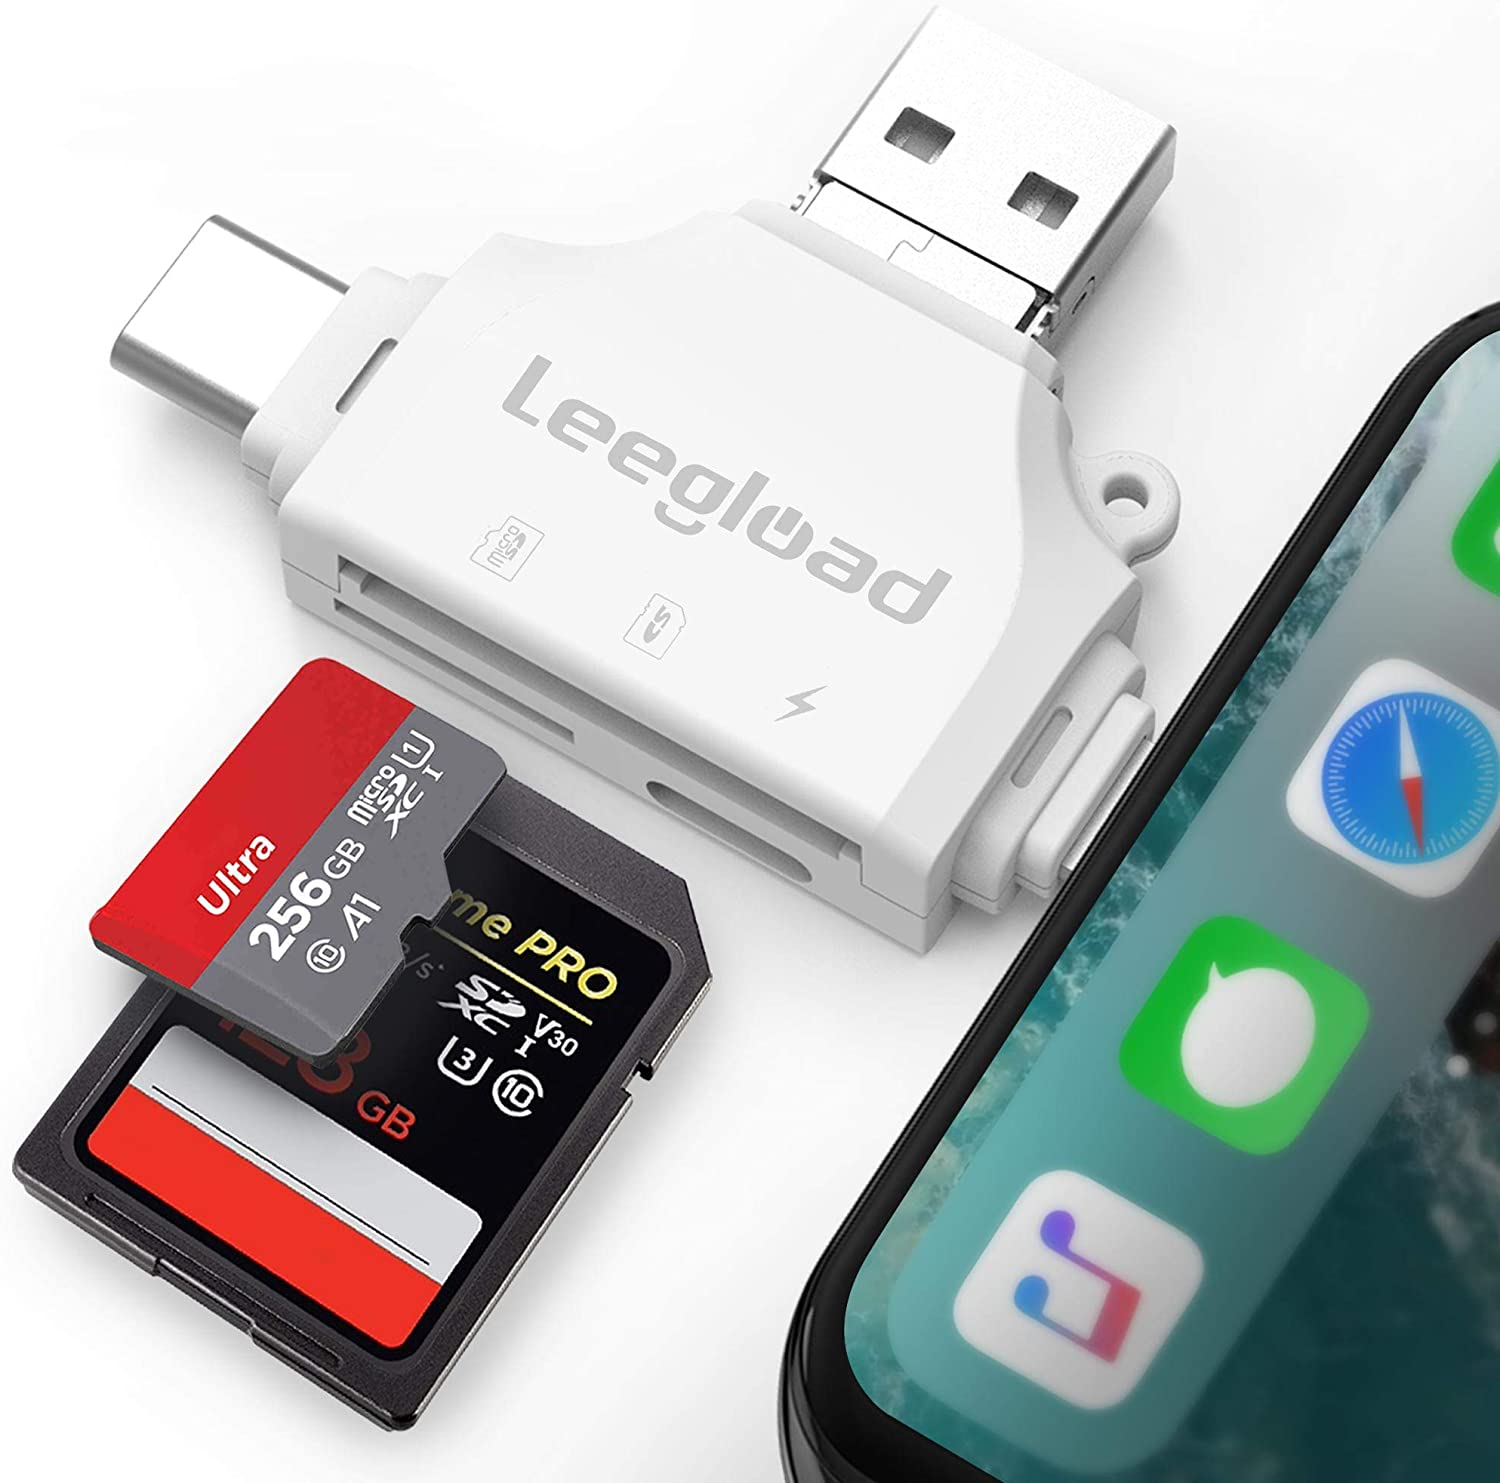 LEEGLOAD SD Card Reader,4 in 1 Micro SD Card Reader for iPhone/iPad/Android/Mac/Trail Camera,Deer Cam Card Viewer with USB C & Lightning,No Need APP